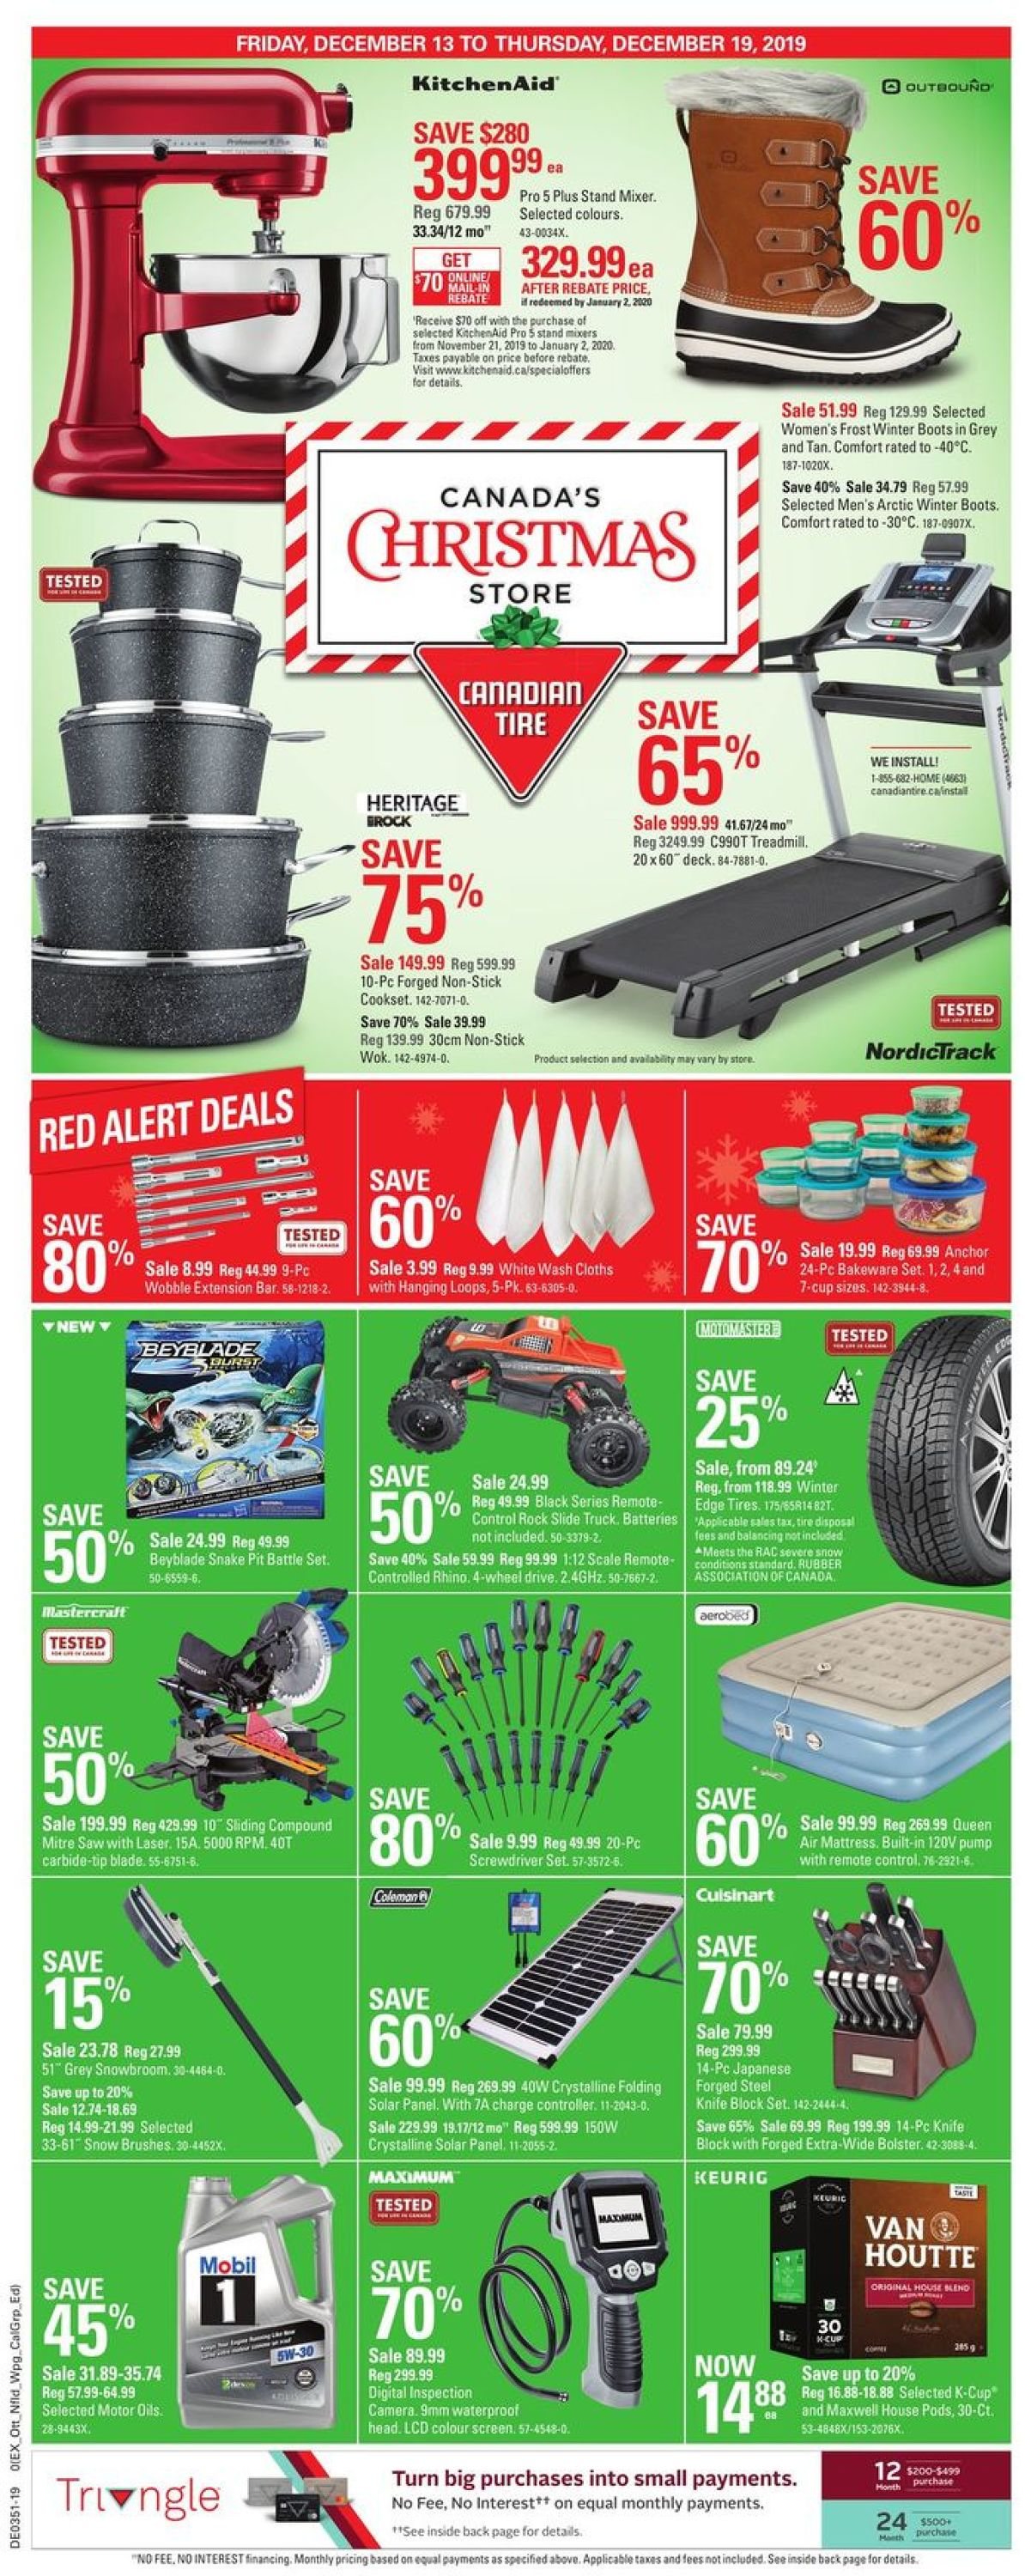 Canadian Tire - Christmas Flyer 2019